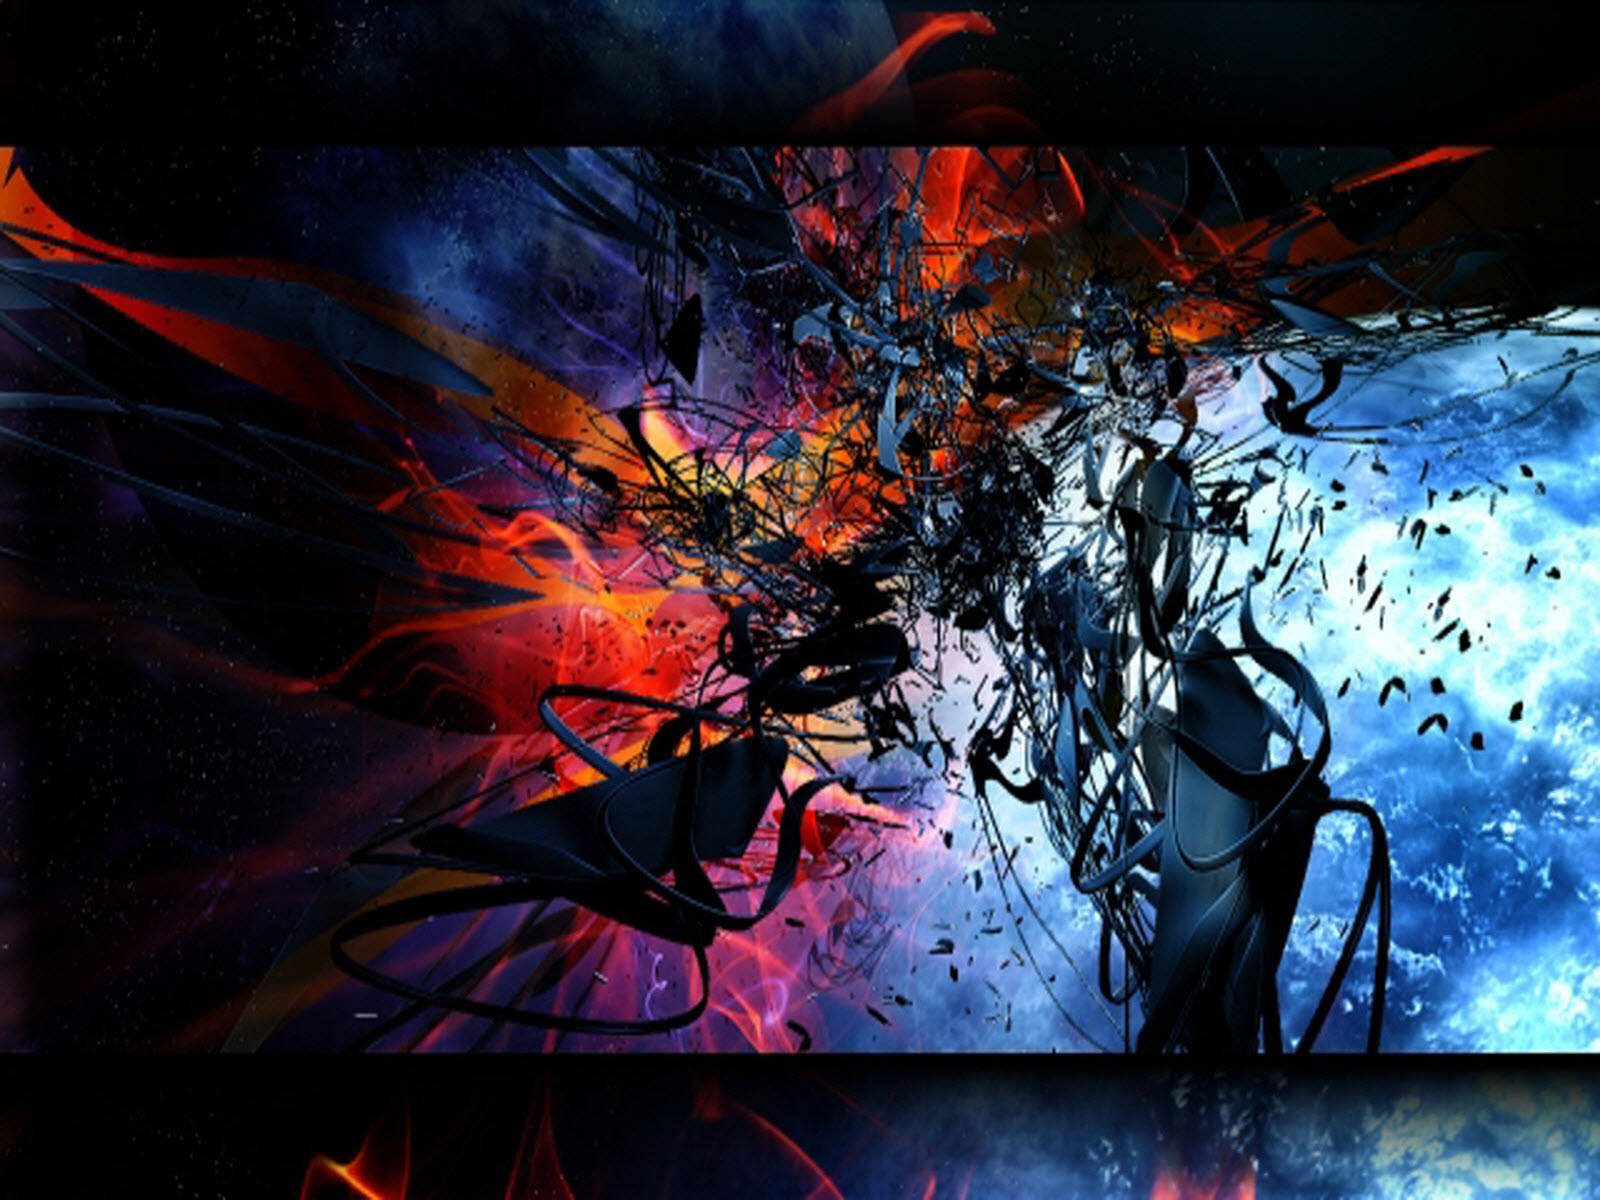 Abstract 3D Wallpapers Desktop Backgrounds Computer 1600x1200